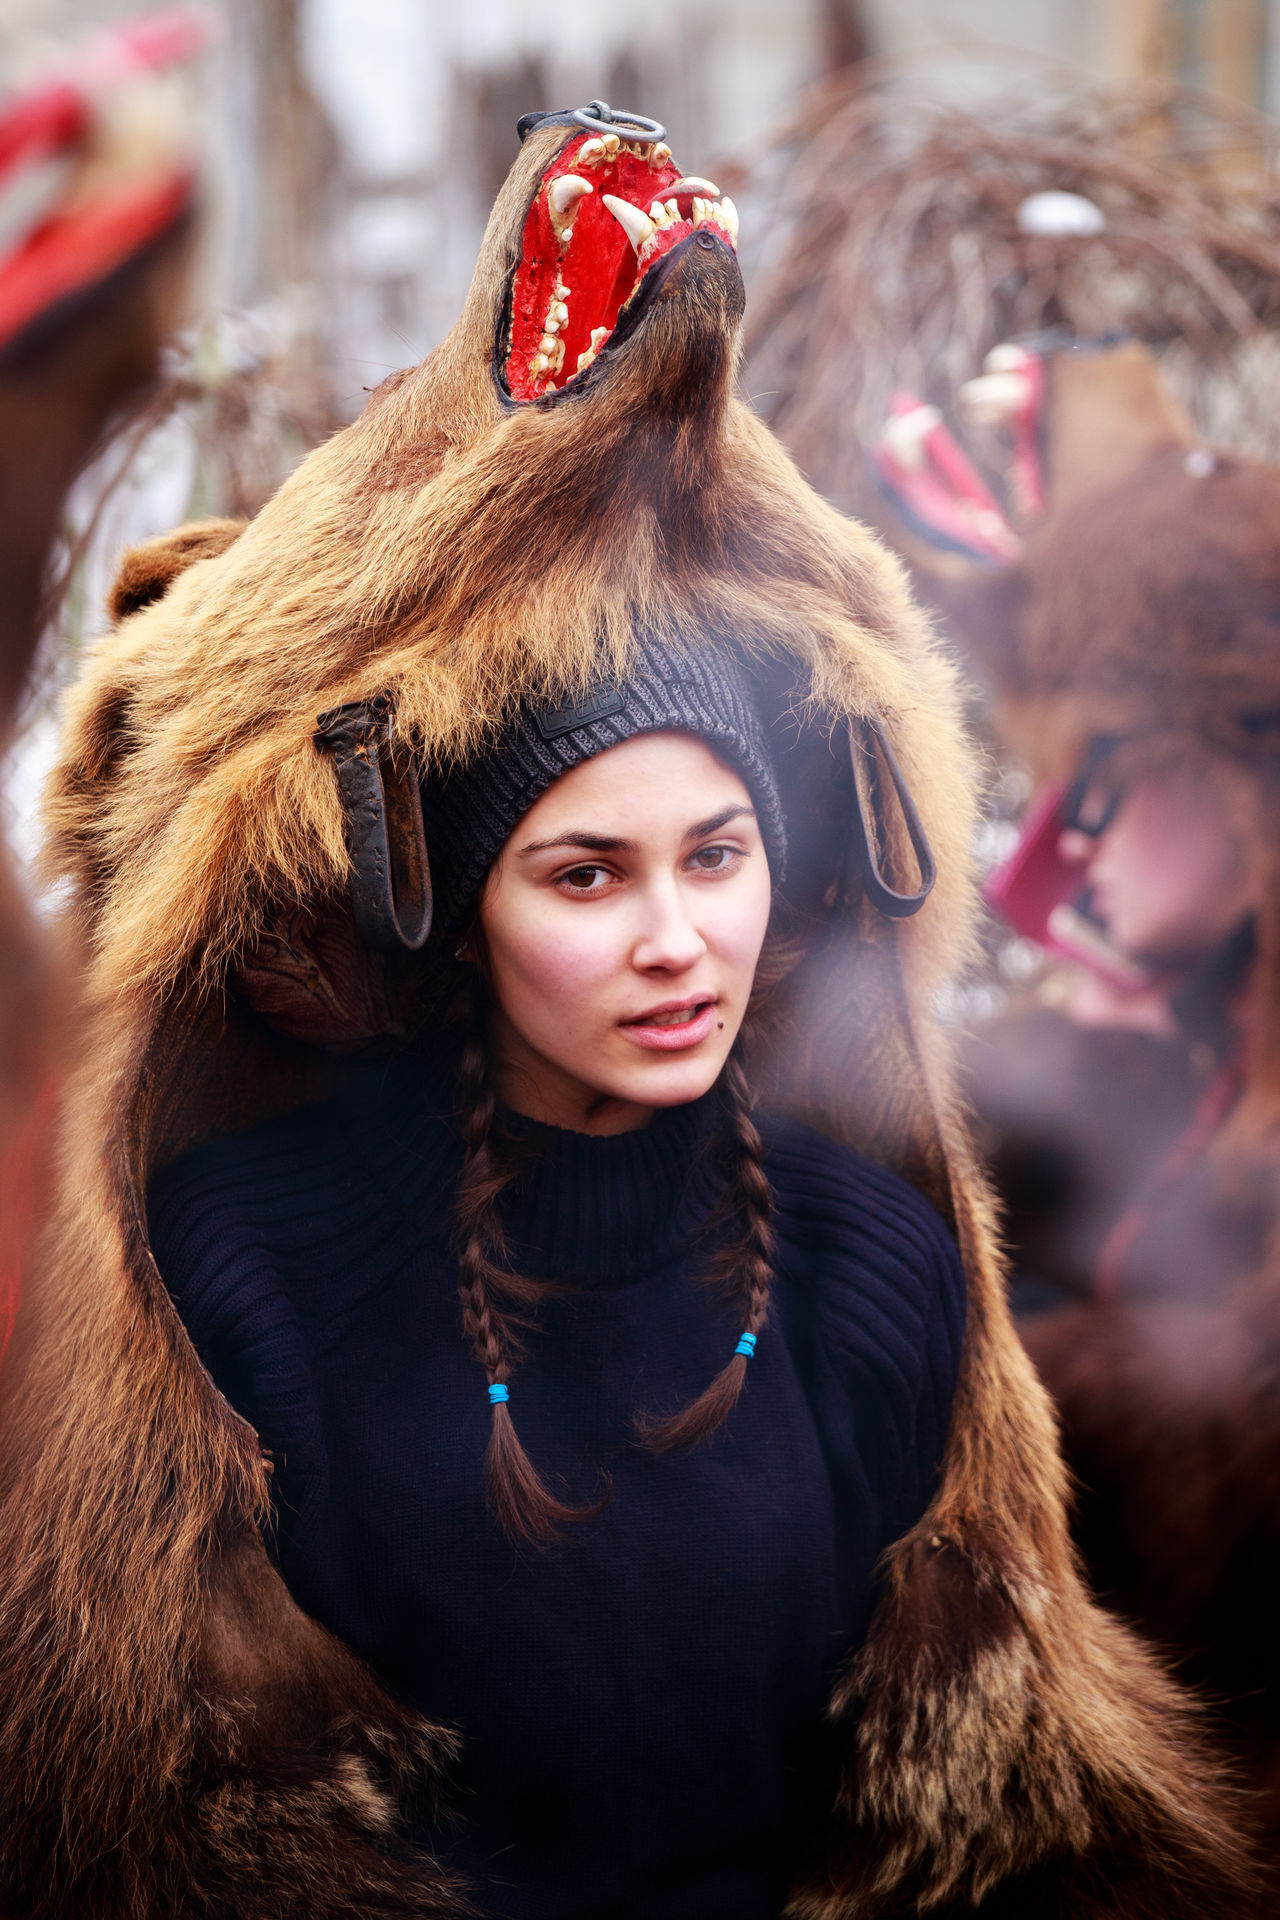 Adult Beautiful Woman Close-up Day Fashion Focus On Foreground Fur Fur Coat Leisure Activity Lifestyles Looking At Camera One Person Outdoors People Portrait Real People Warm Clothing Winter Young Adult Young Women